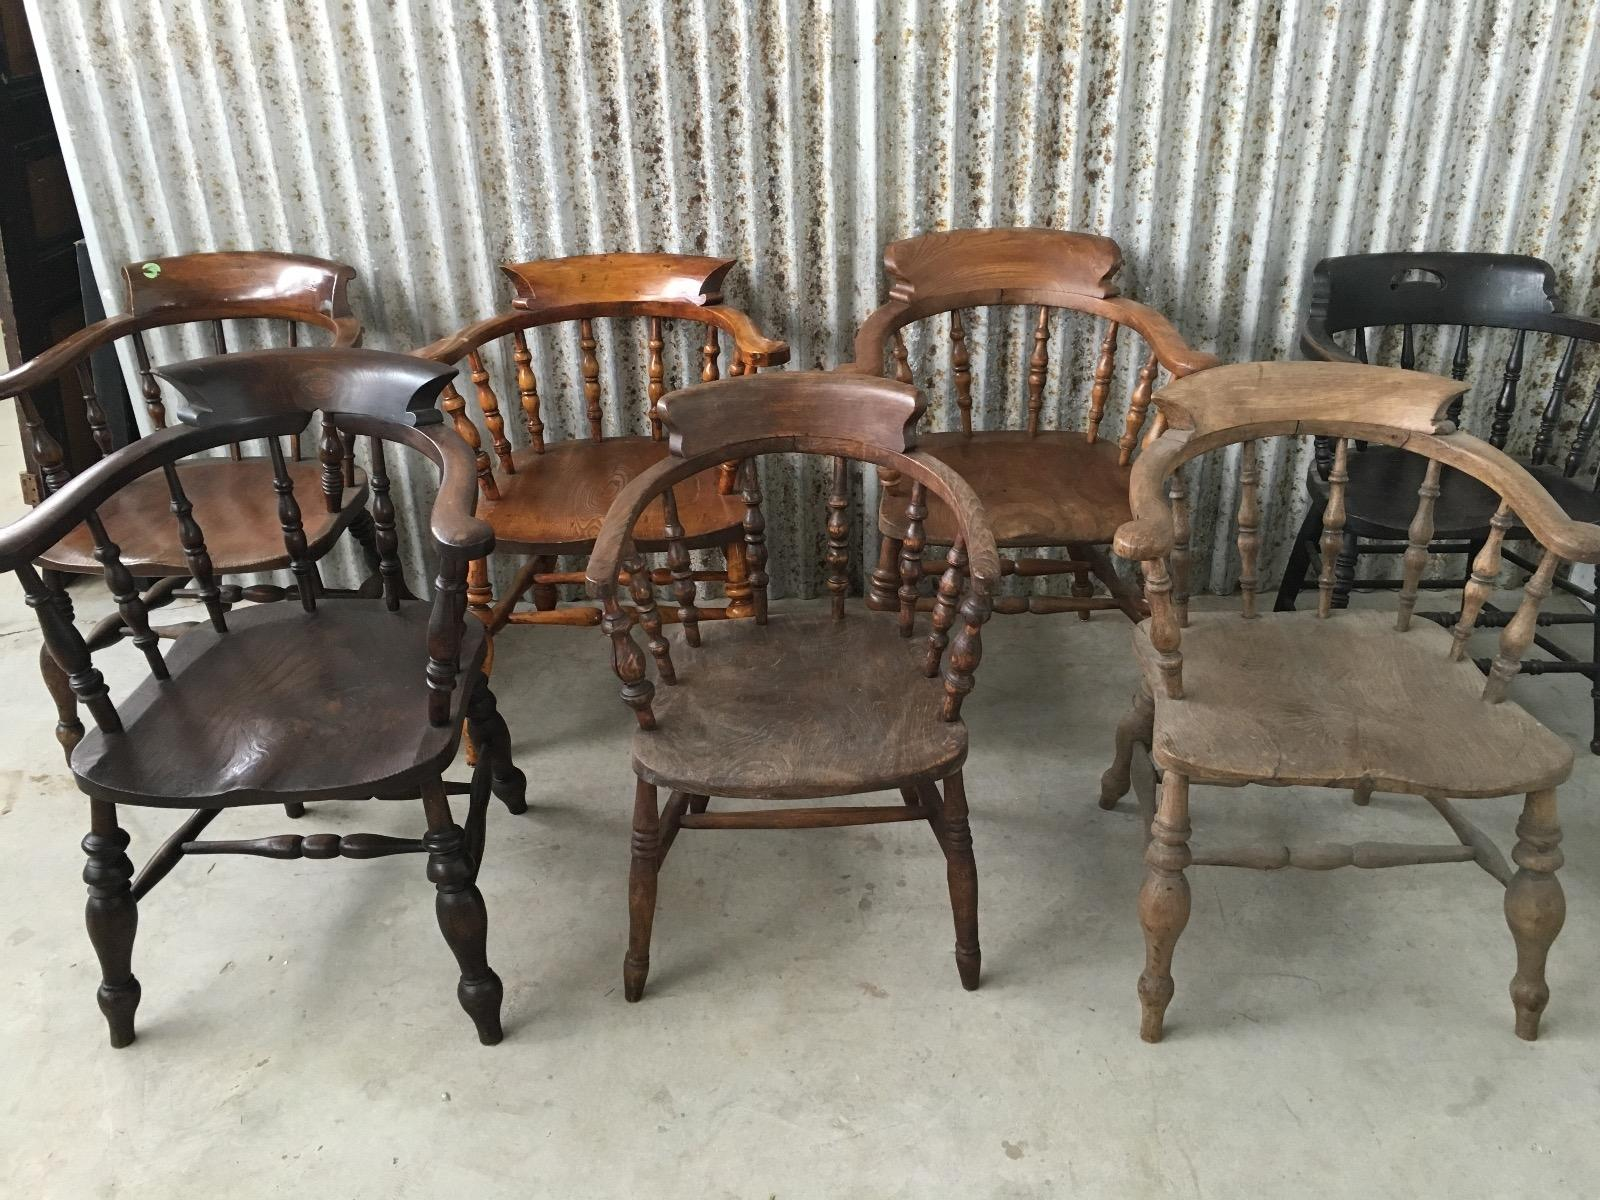 Antique captains chairs - Antique Chair From England Captains Chairs 1130706